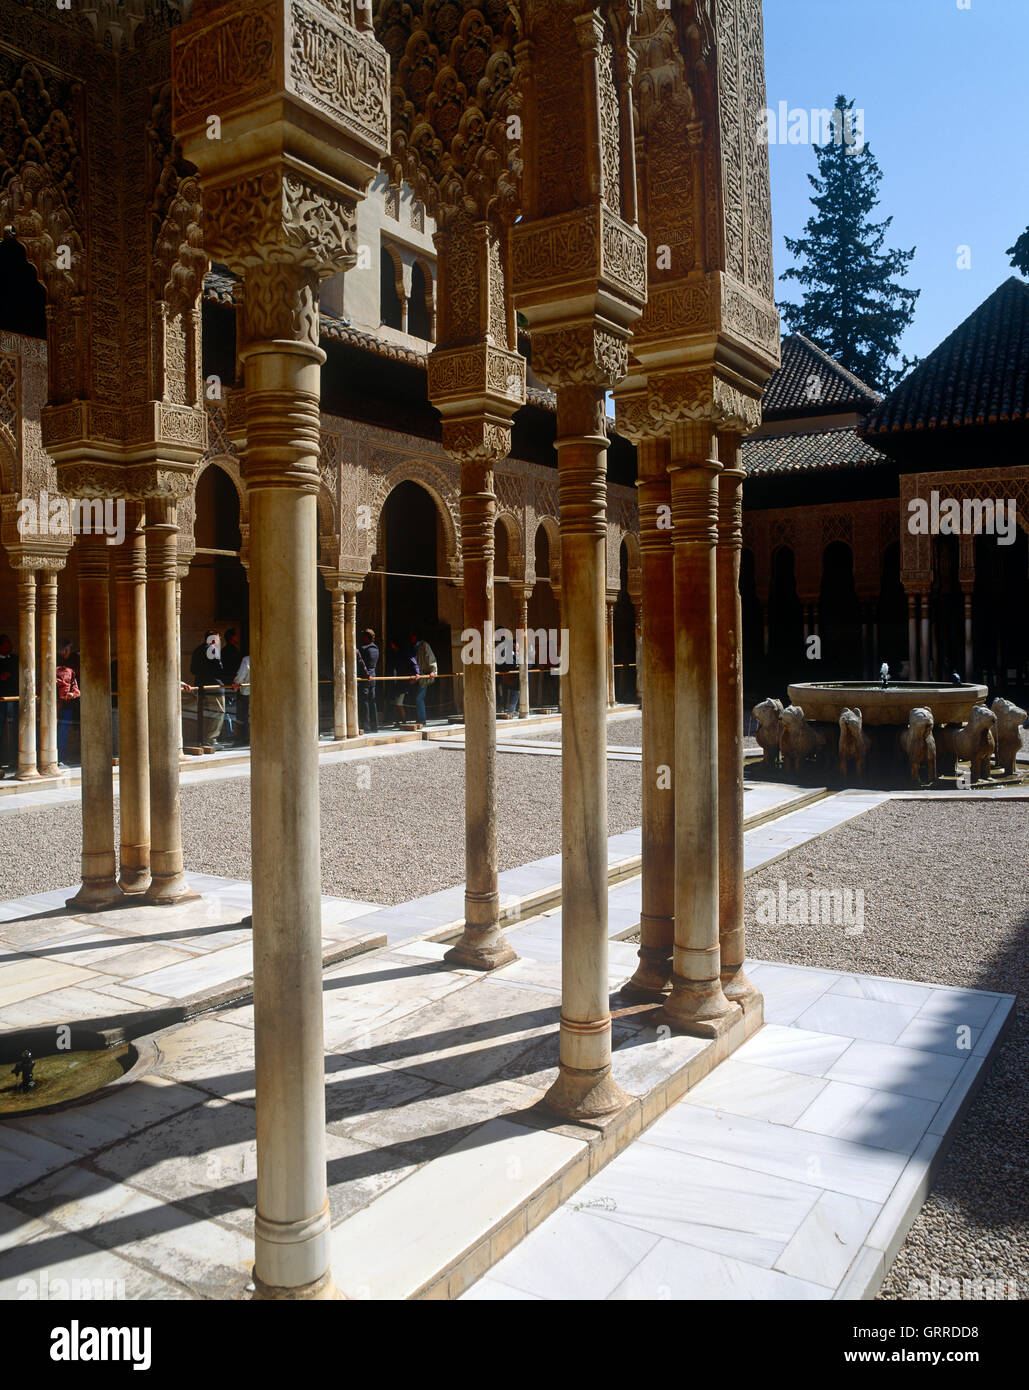 Court of the Lions, Alhambra Palace, Andalucia, Granada, Spain - Stock Image